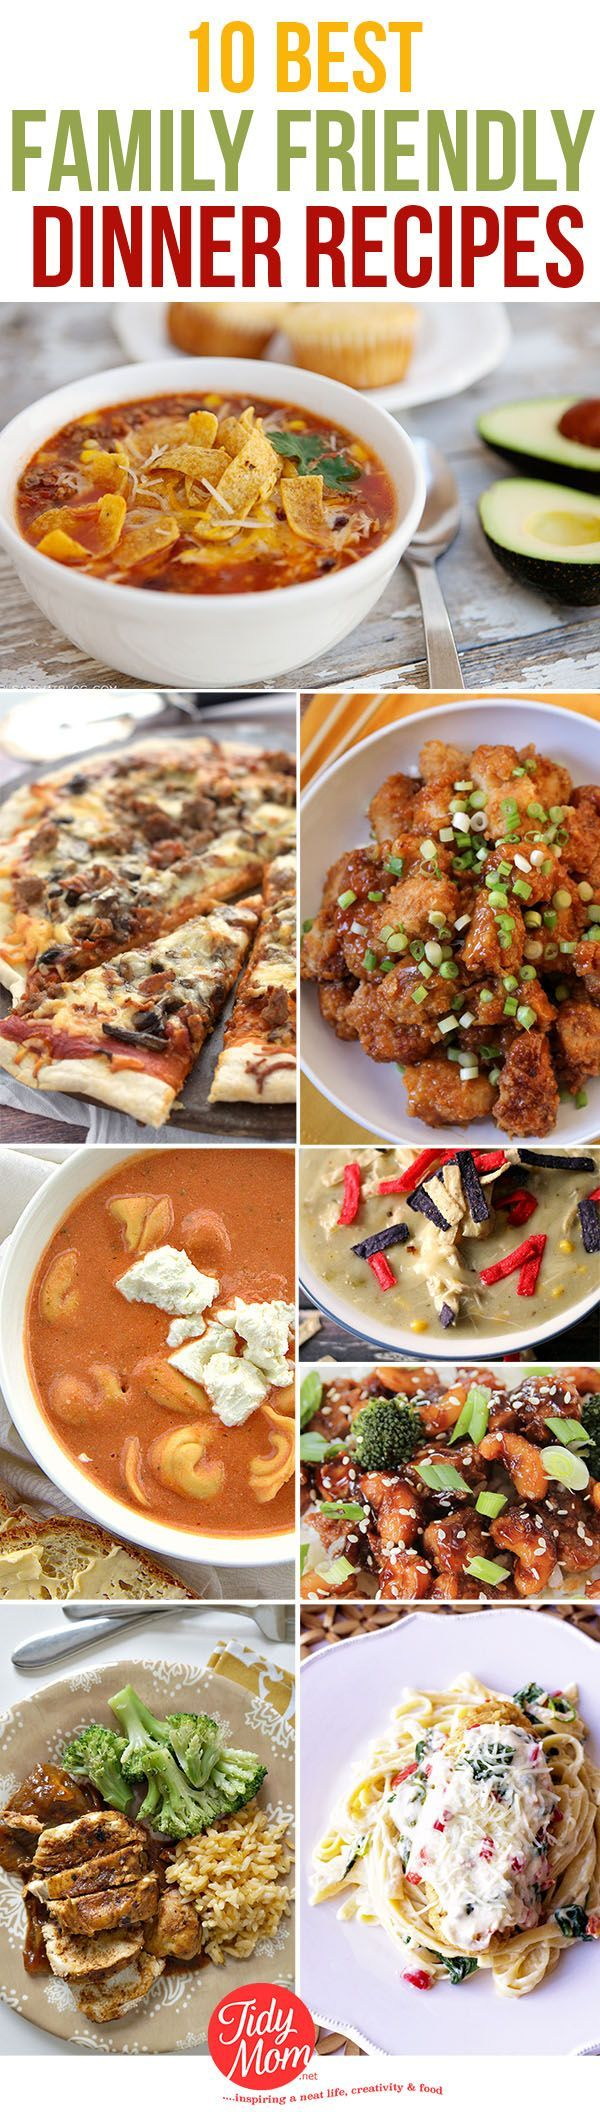 Please The Whole Family With These Easy Weeknight Meals Everyone Will Love 10 Dinner